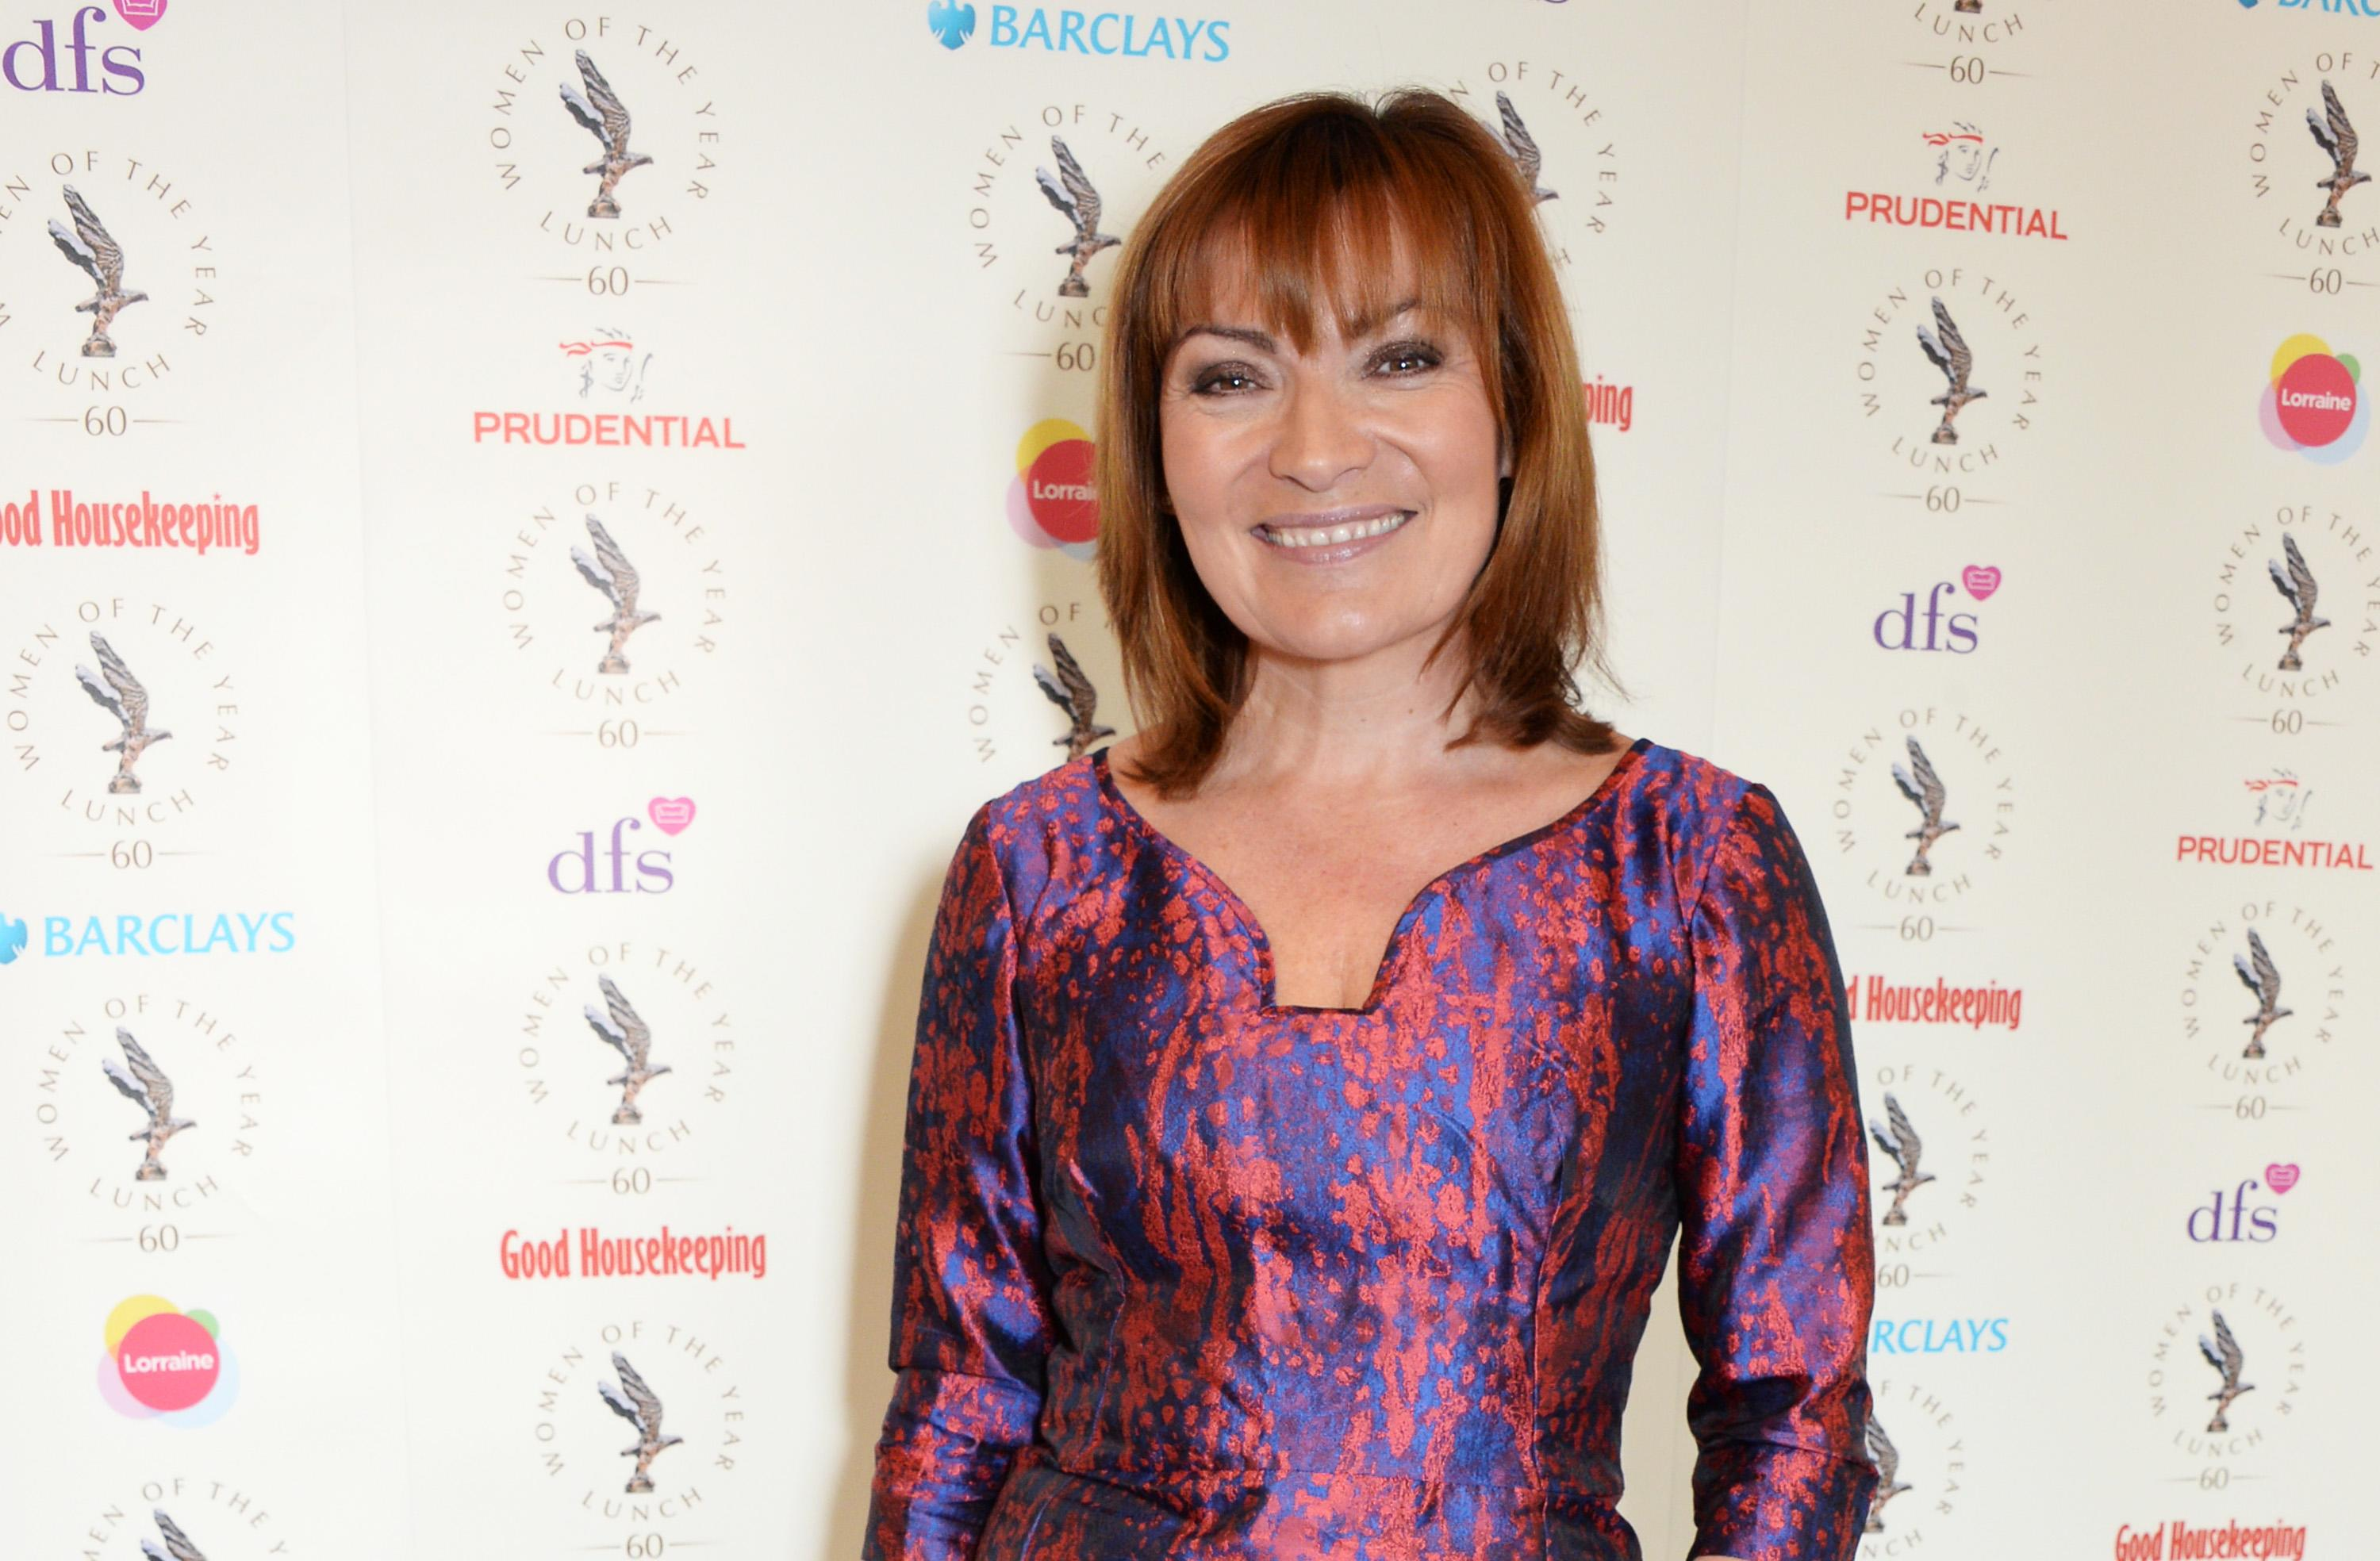 LONDON, ENGLAND - OCTOBER 13: Lorraine Kelly attends The 59th Women of the Year Lunch at the InterContinental Park Lane Hotel on October 13, 2014 in London, England. (Photo by David M. Benett/Getty Images)